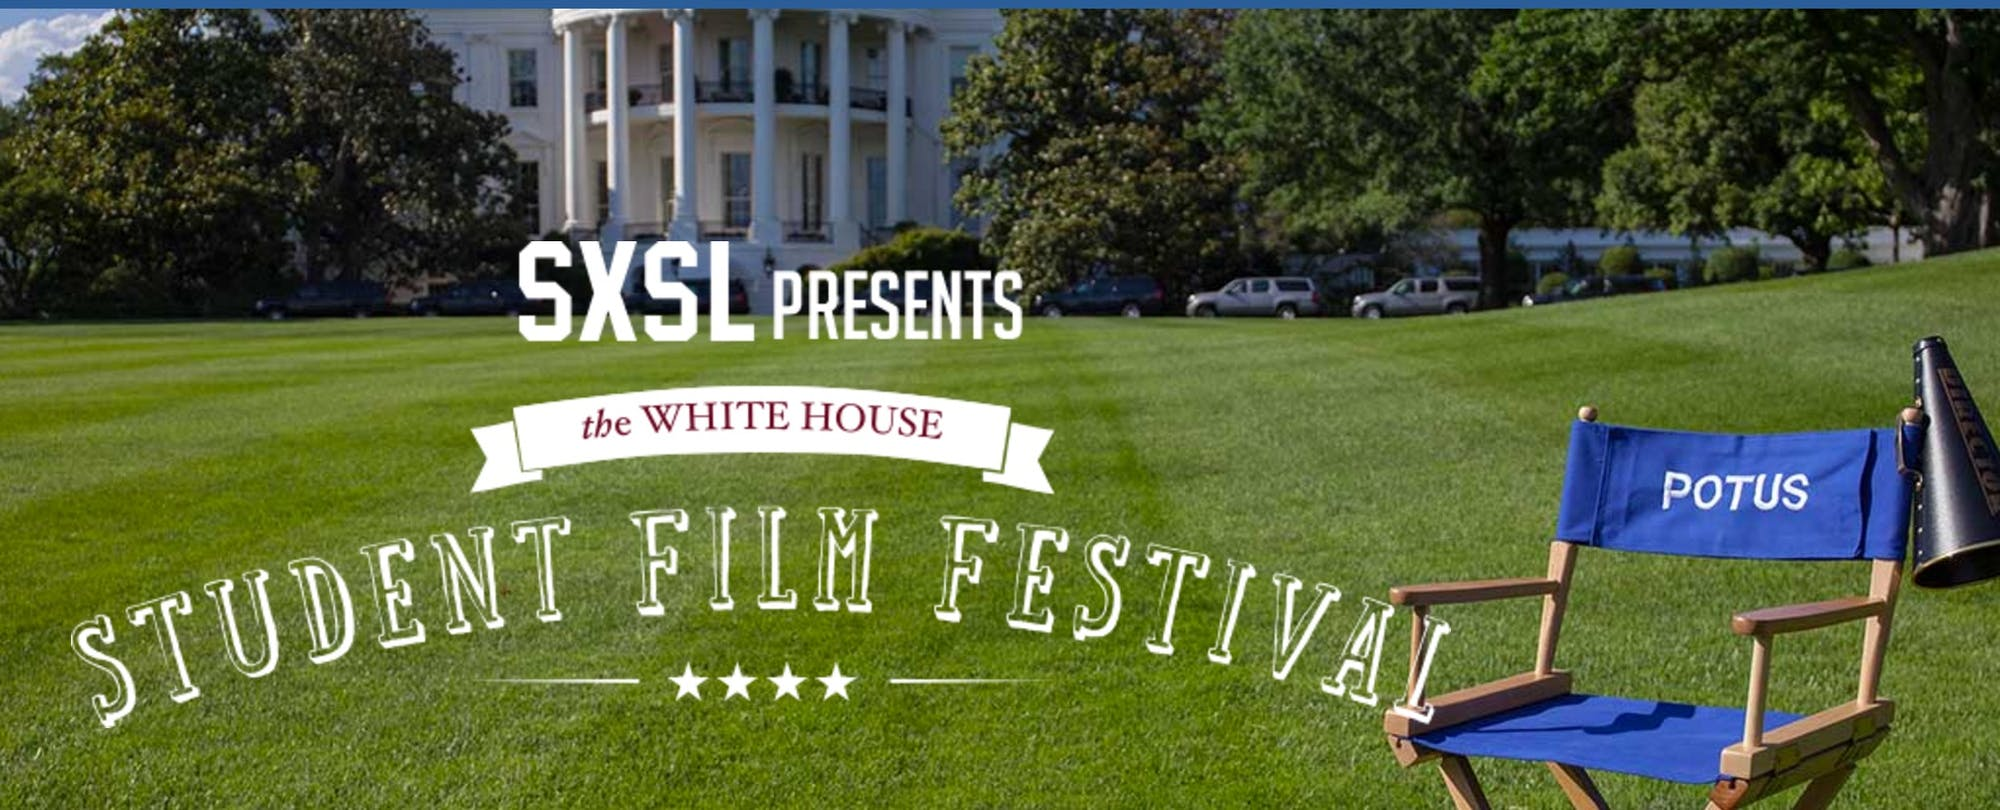 Commander-in-Coolness Hosts White House Fest